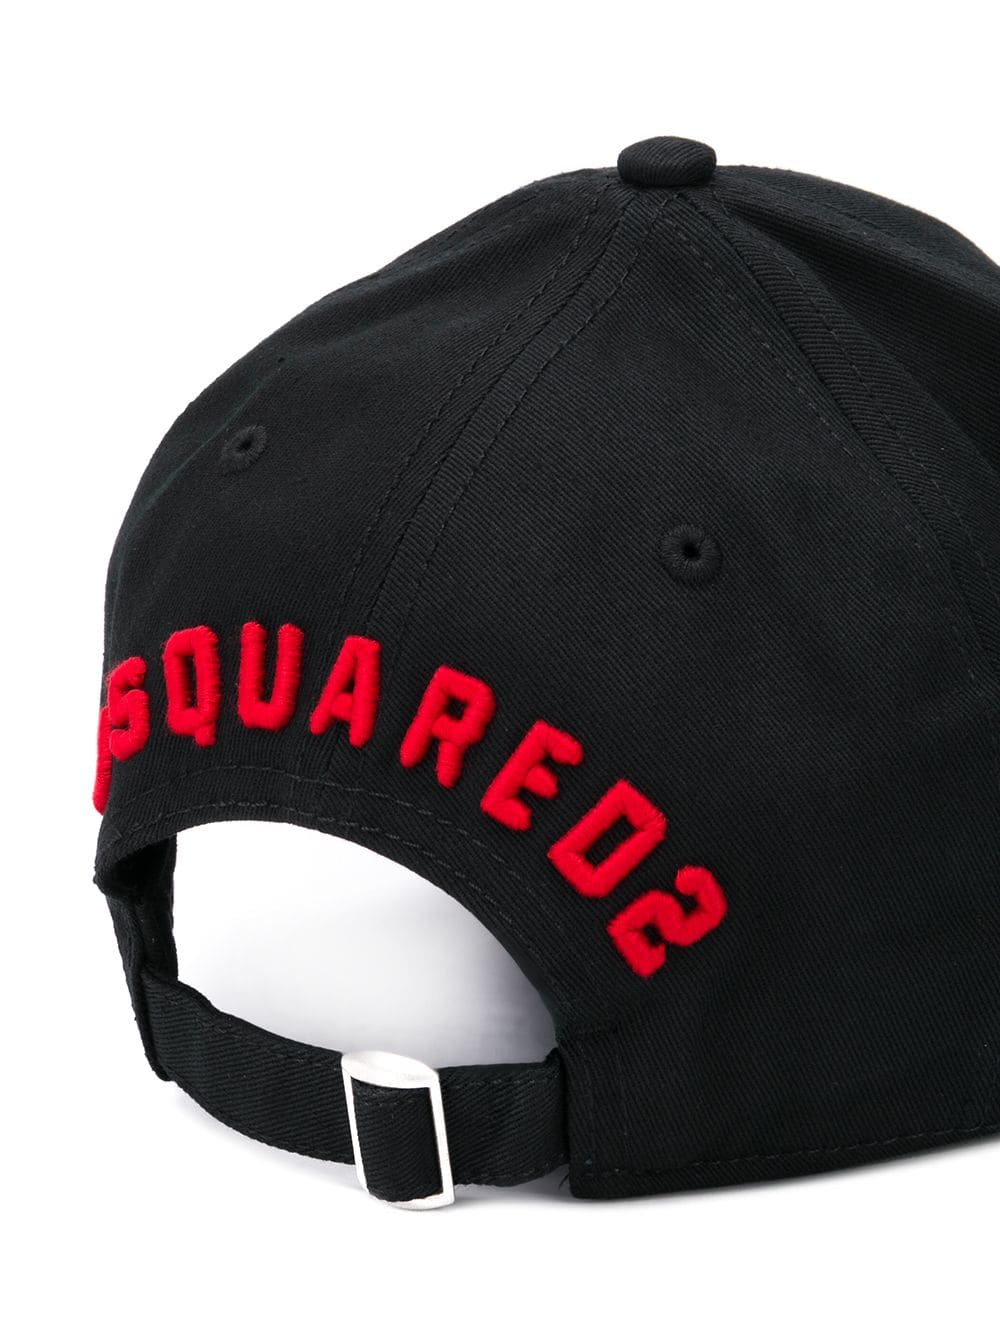 7d7fefbf Black Baseball Cap With Red Icon Logo - DSQUARED2 - Russocapri